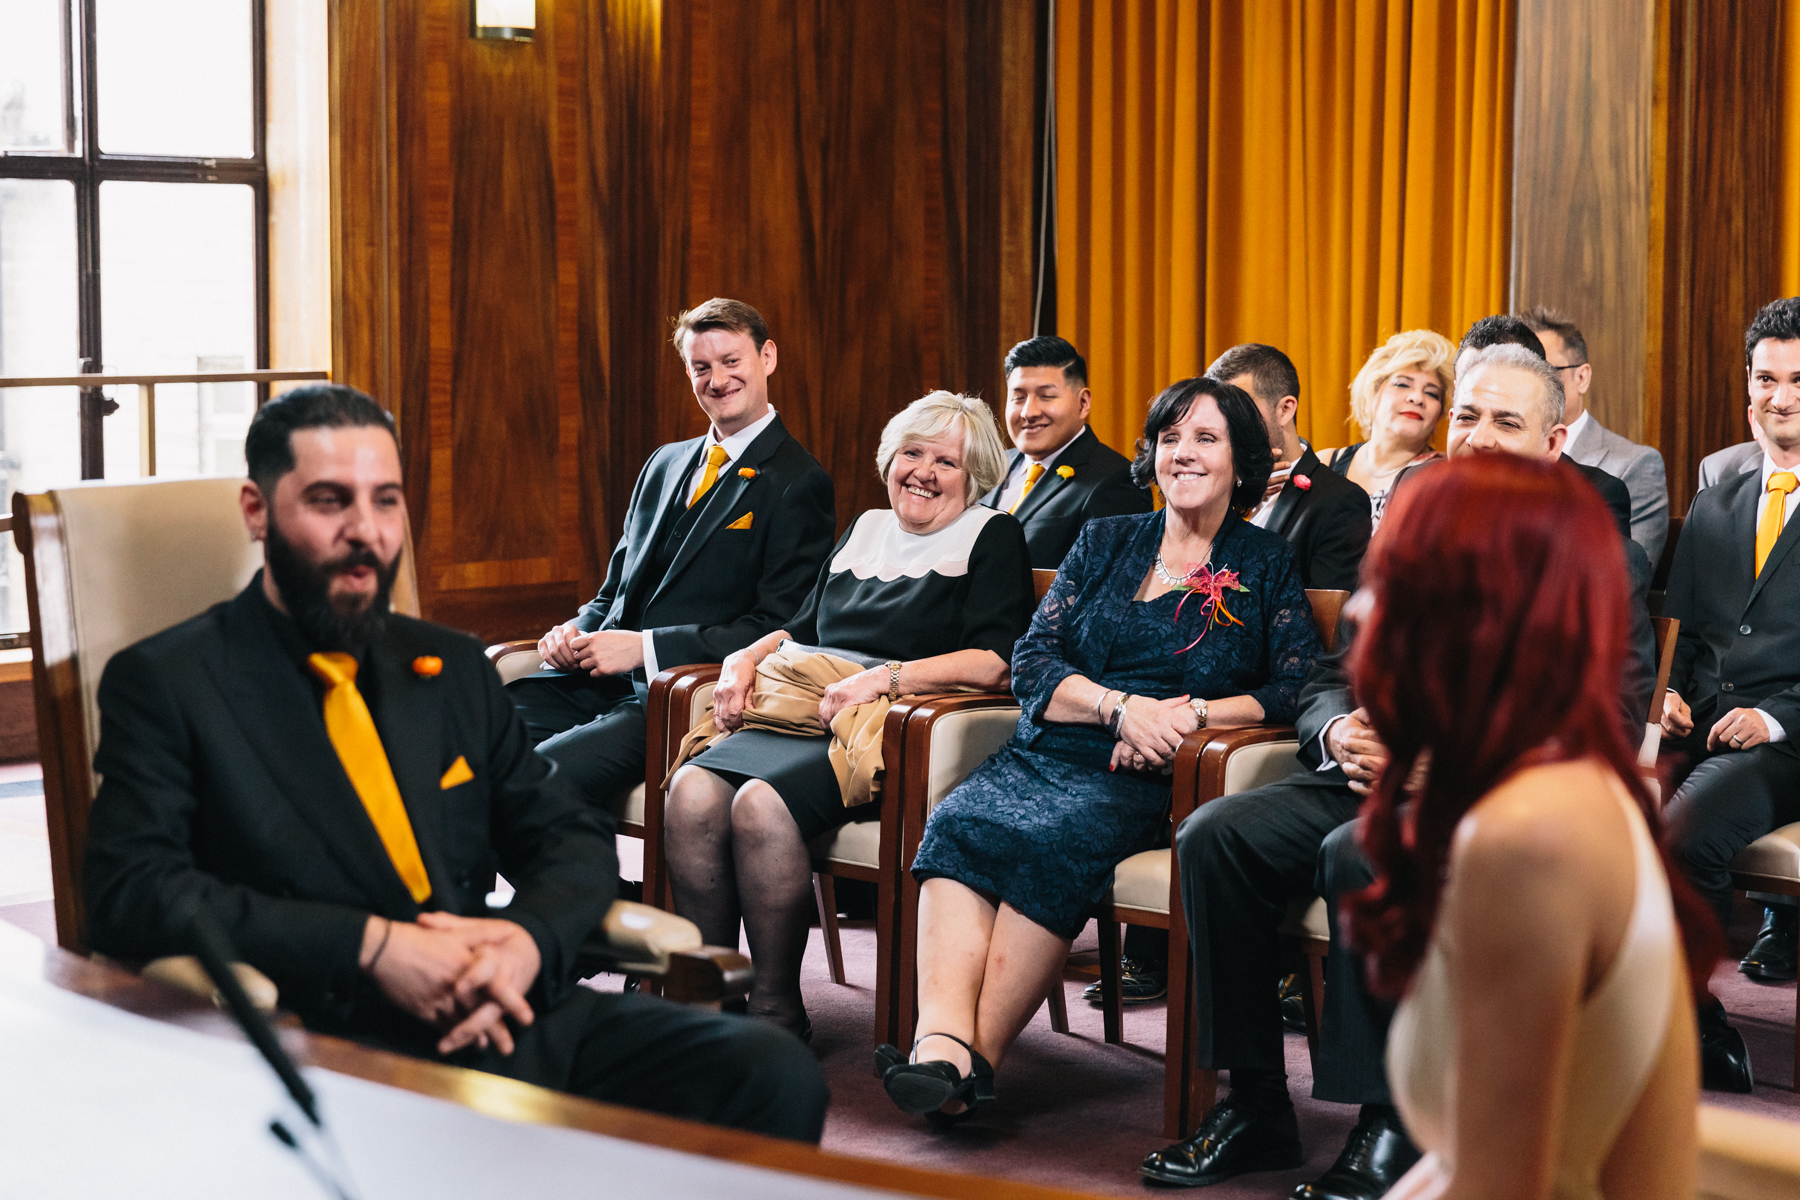 STOKE NEWINGTON TOWN HALL WEDDING-18